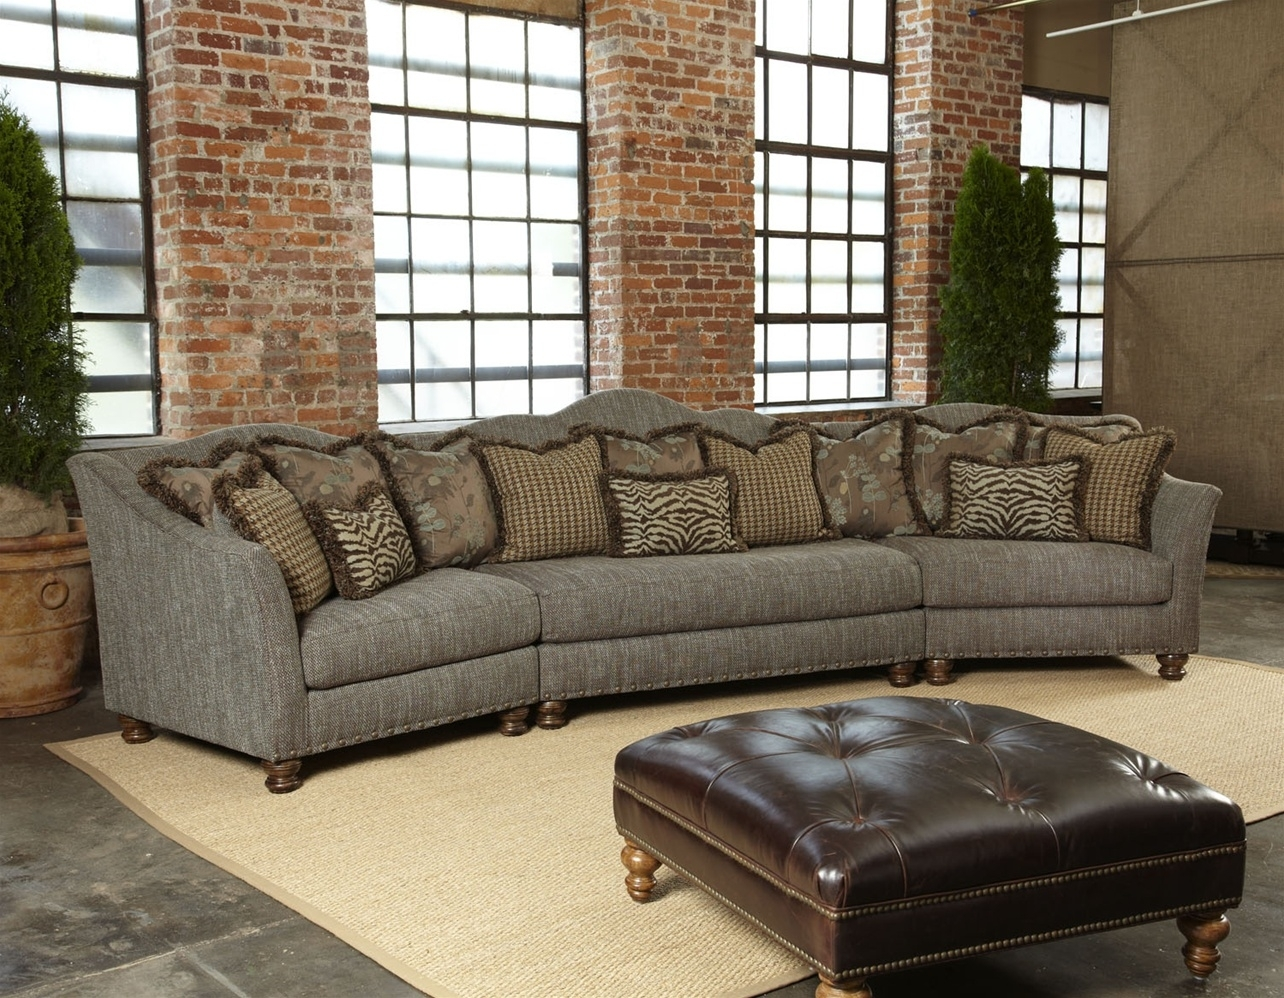 High End Sectional Sofas – Cleanupflorida With Regard To High End Leather Sectional Sofas (View 4 of 10)